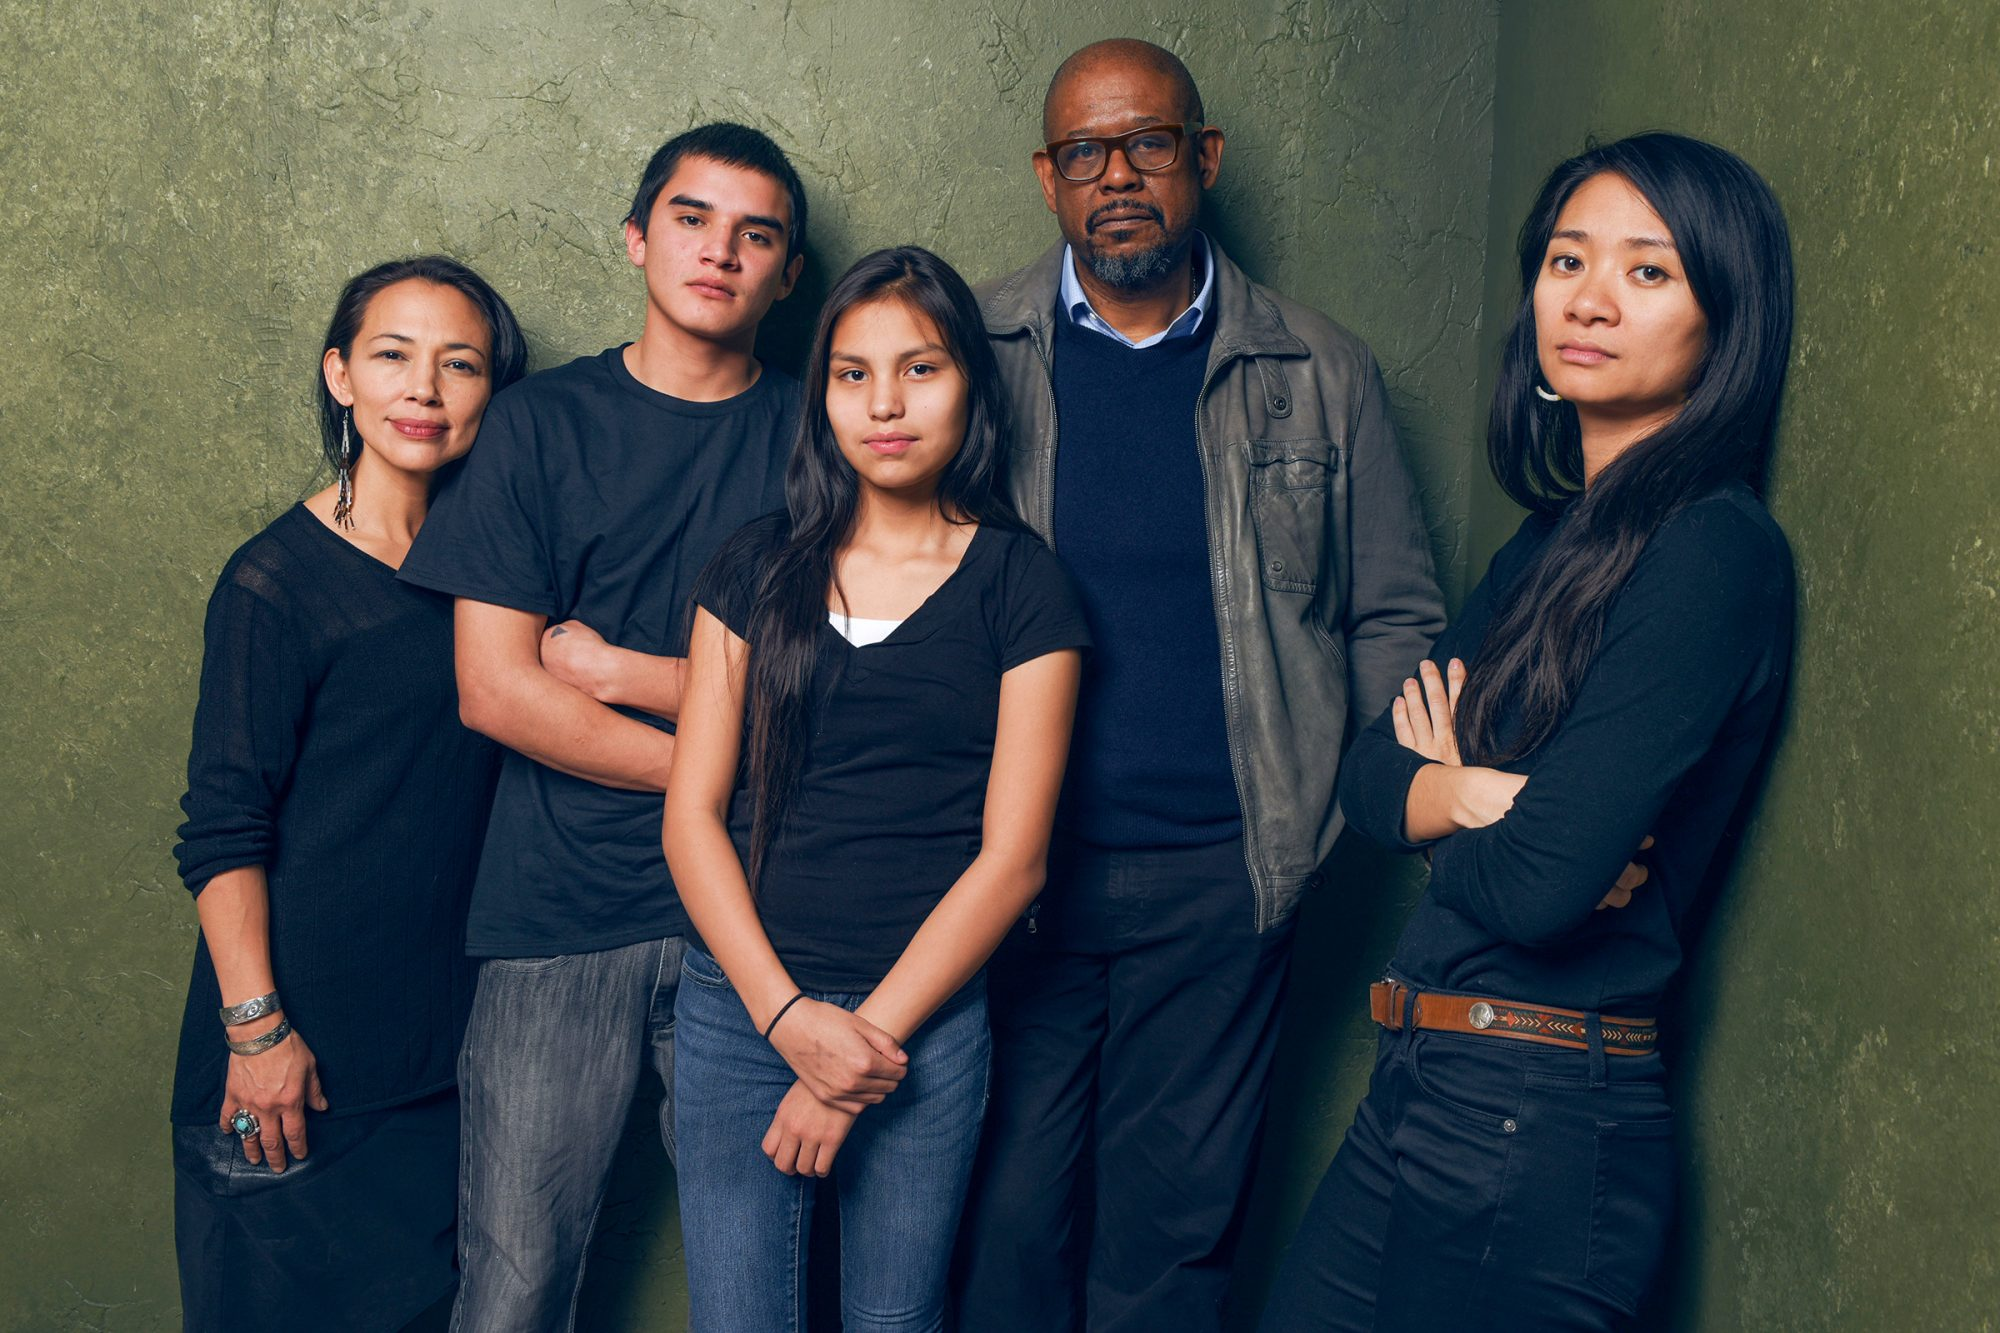 """Actress Irene Bedard, actor John Reddy, actress Jashaun St. John, producer Forest Whitaker and writer/director Chloe Zhao of """"Songs My Brothers Taught Me"""" pose for a portrait at the Village at the Lift"""